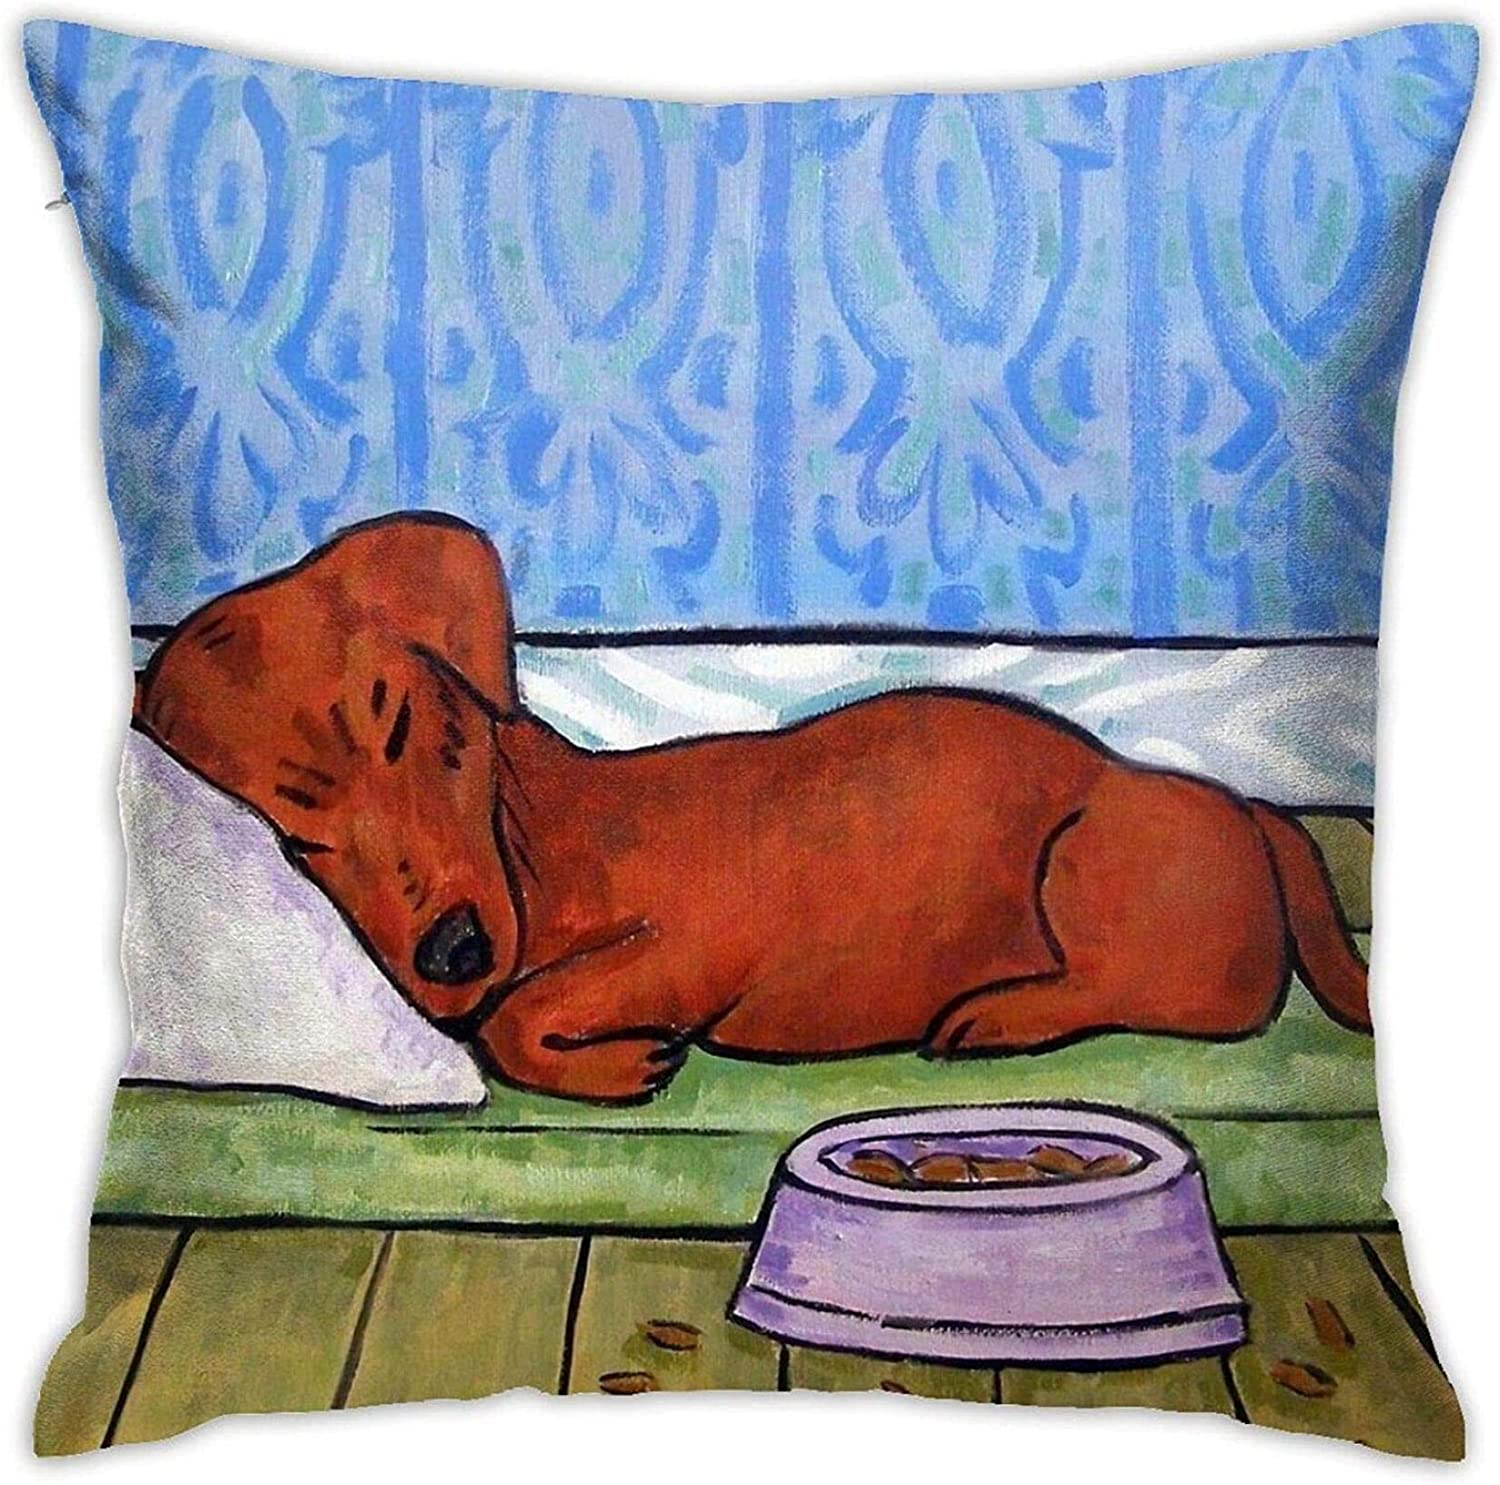 Andy Pansy Dachshund Ugliest Ugly FUUNY Red White Food Art Dog Pattern Throw Pillow Covers Cushion Cover Pillowcase for Sofa Couch Decor Home Decor 18x18 Inch (45 X 45cm)